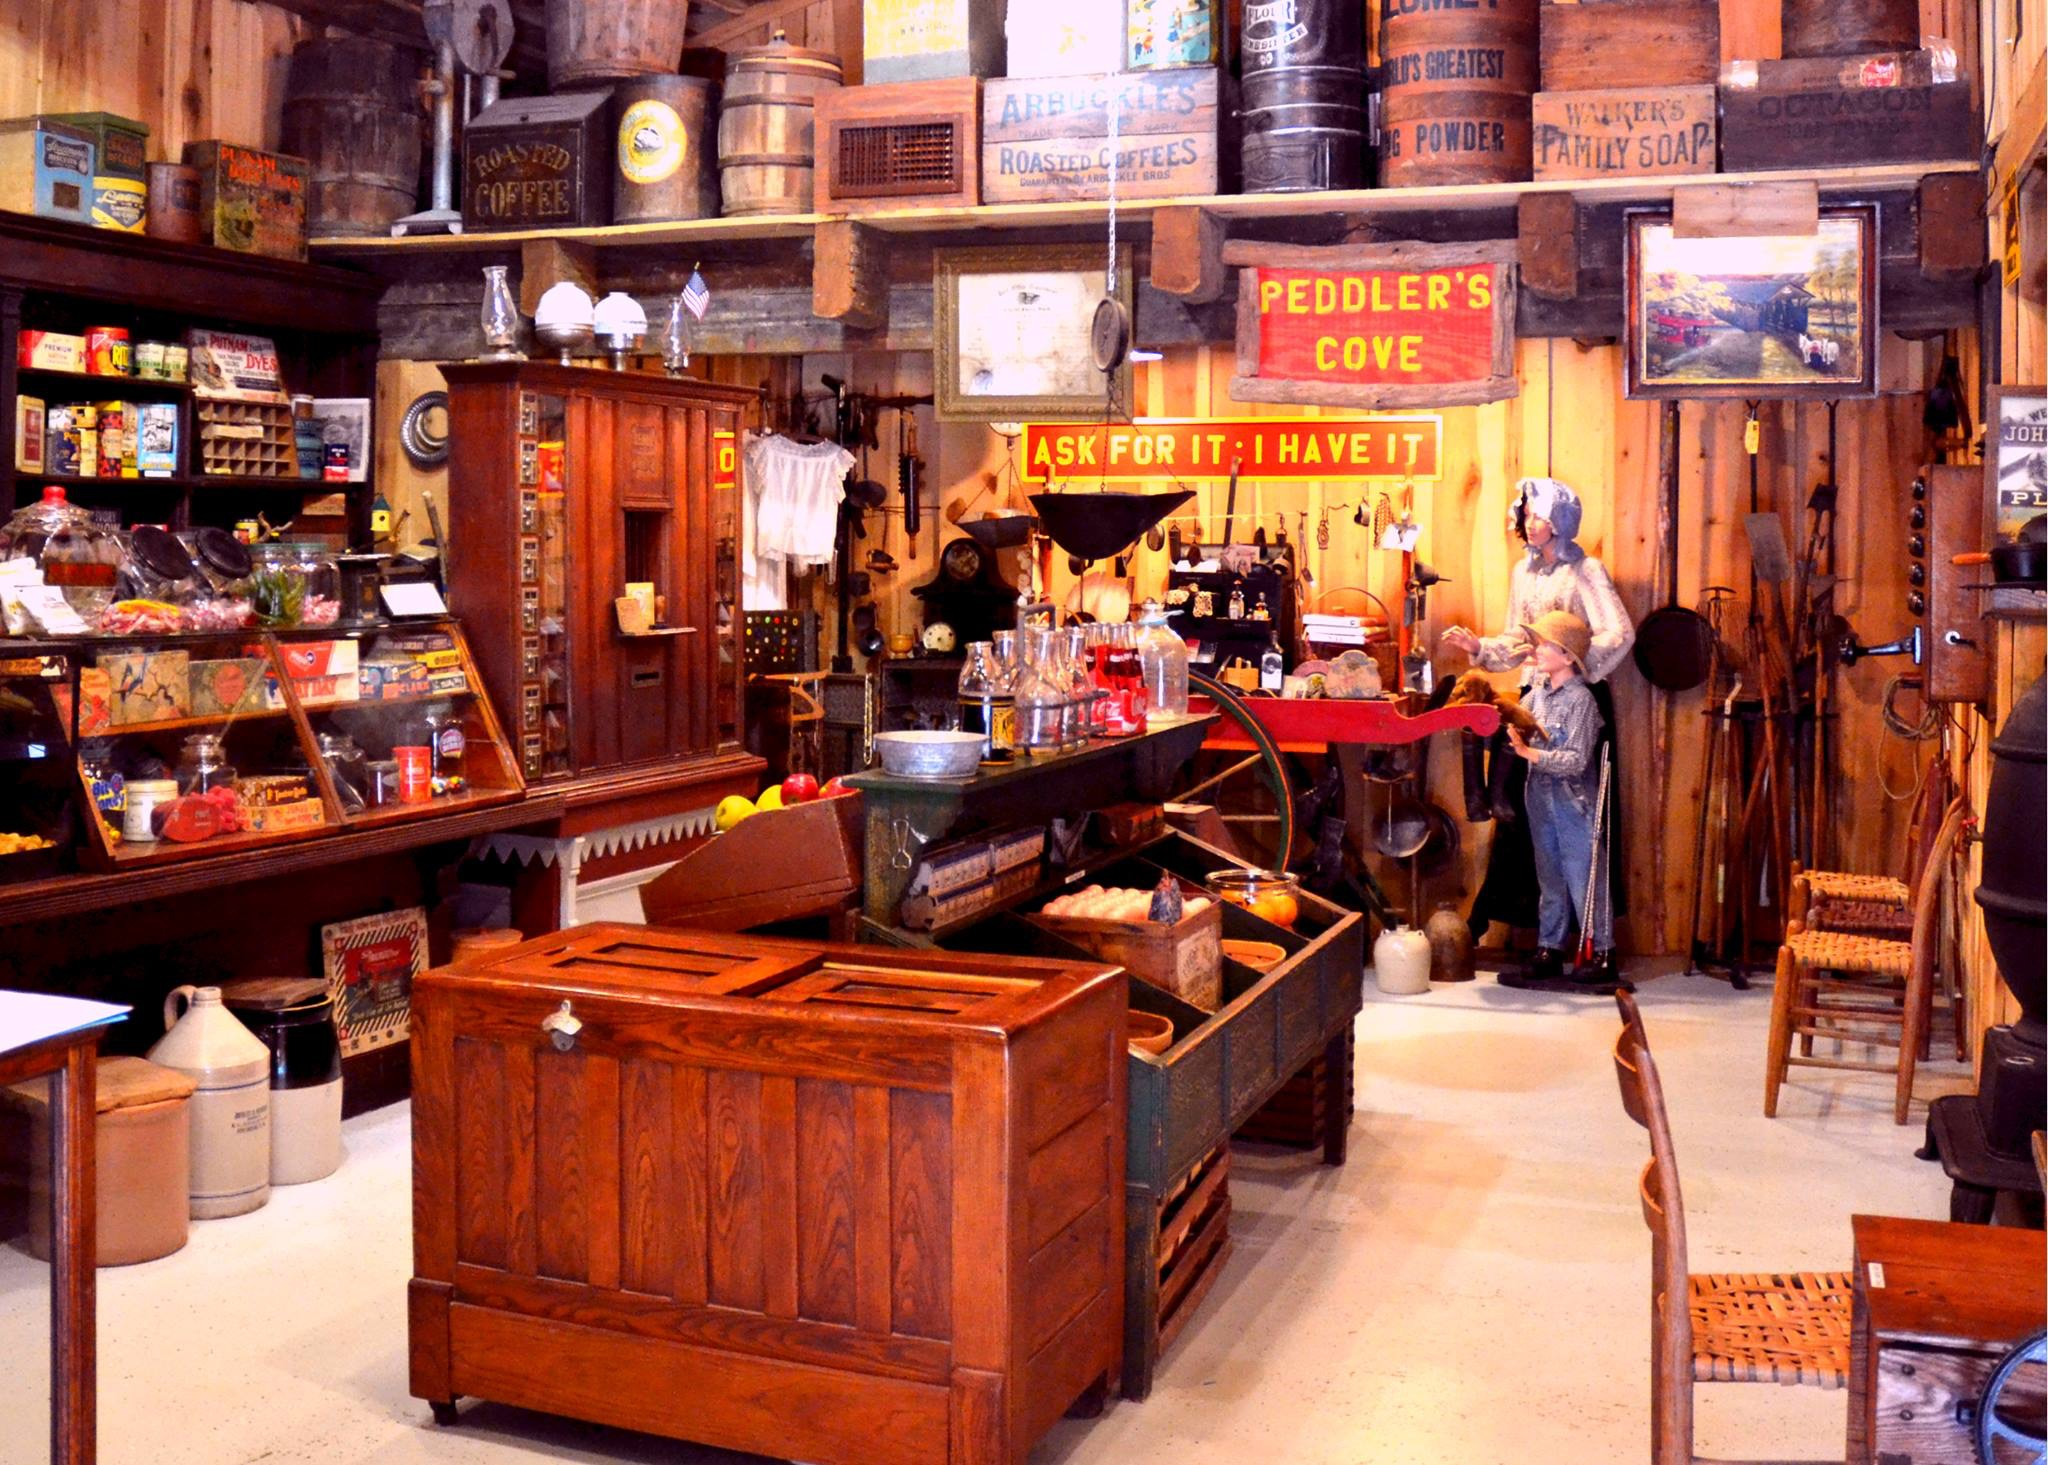 The museum features a variety of artifacts and products that could be found in general stores throughout the nineteenth and early twentieth centuries.